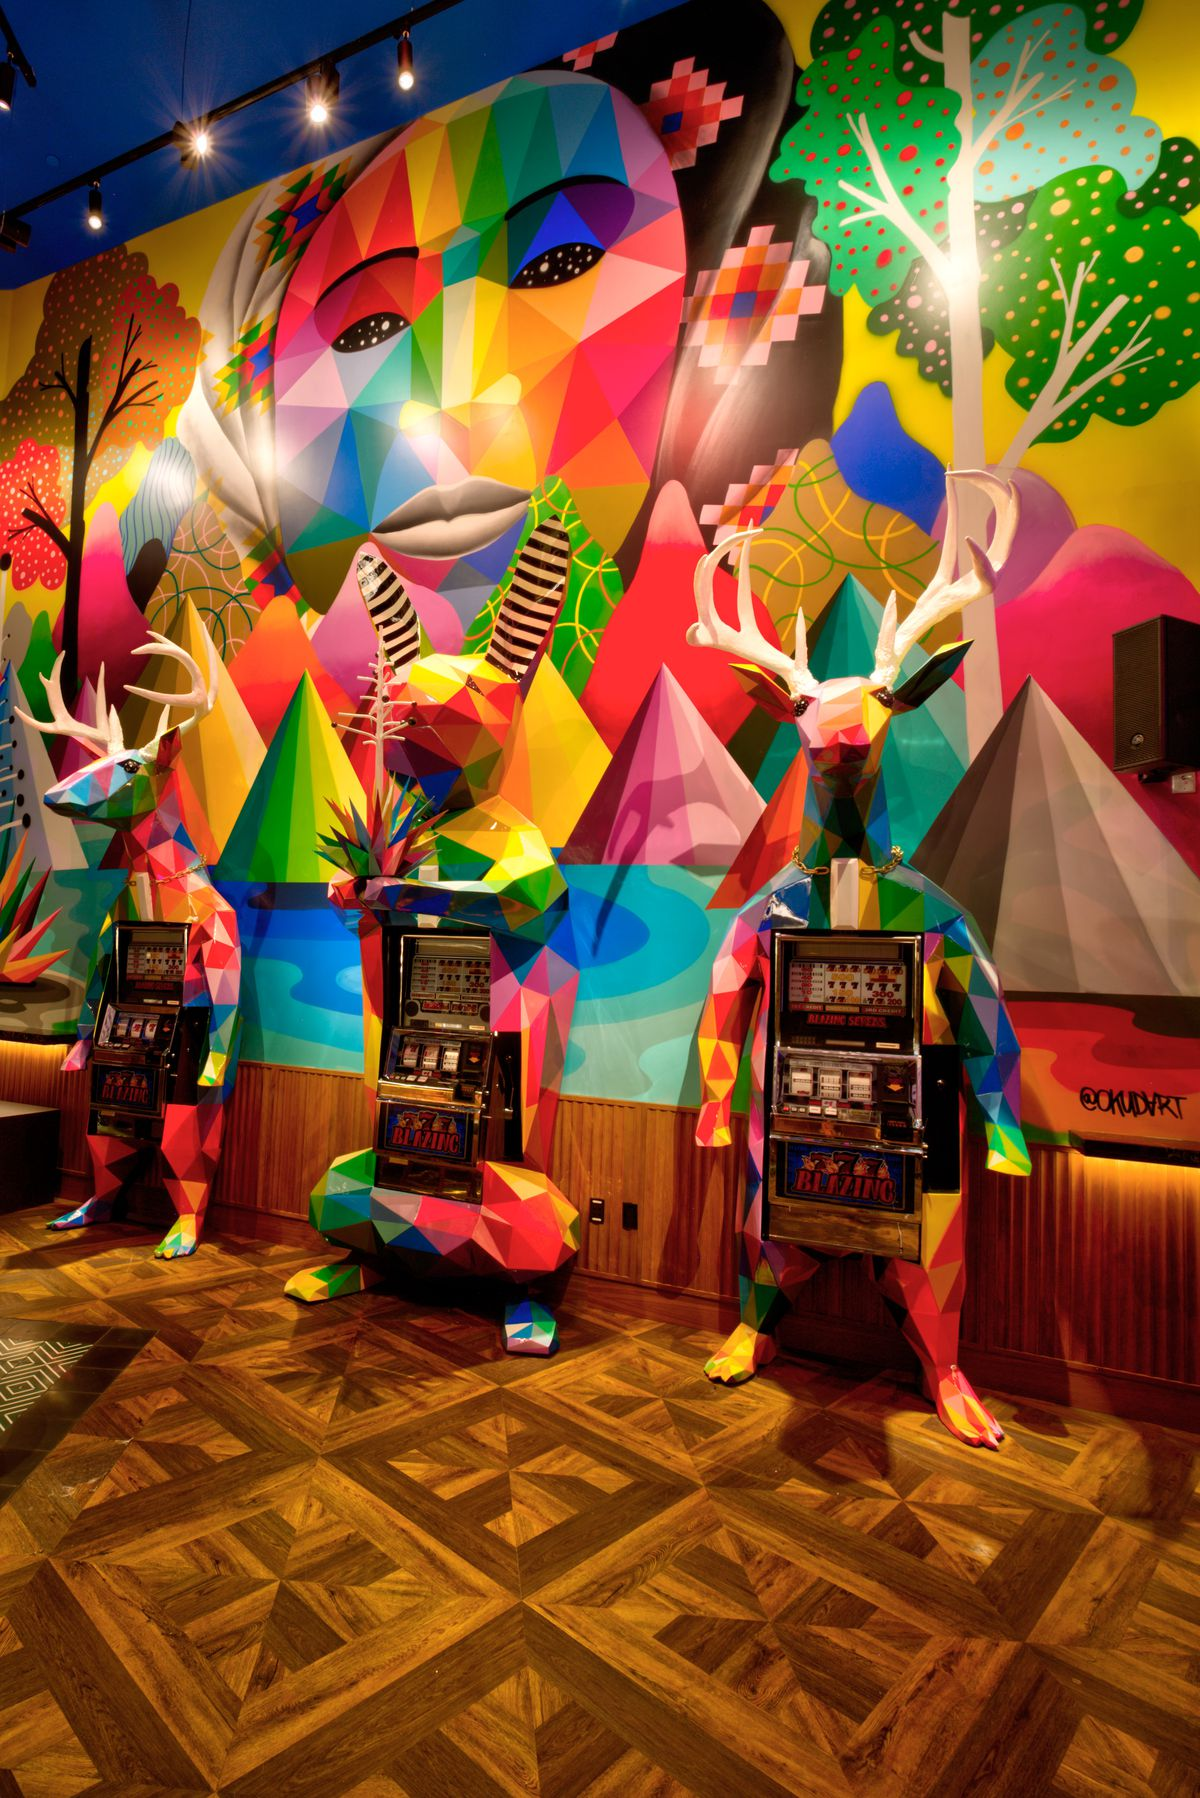 A colorful mural overlooks three slot machines designed like two deer and a rabbit